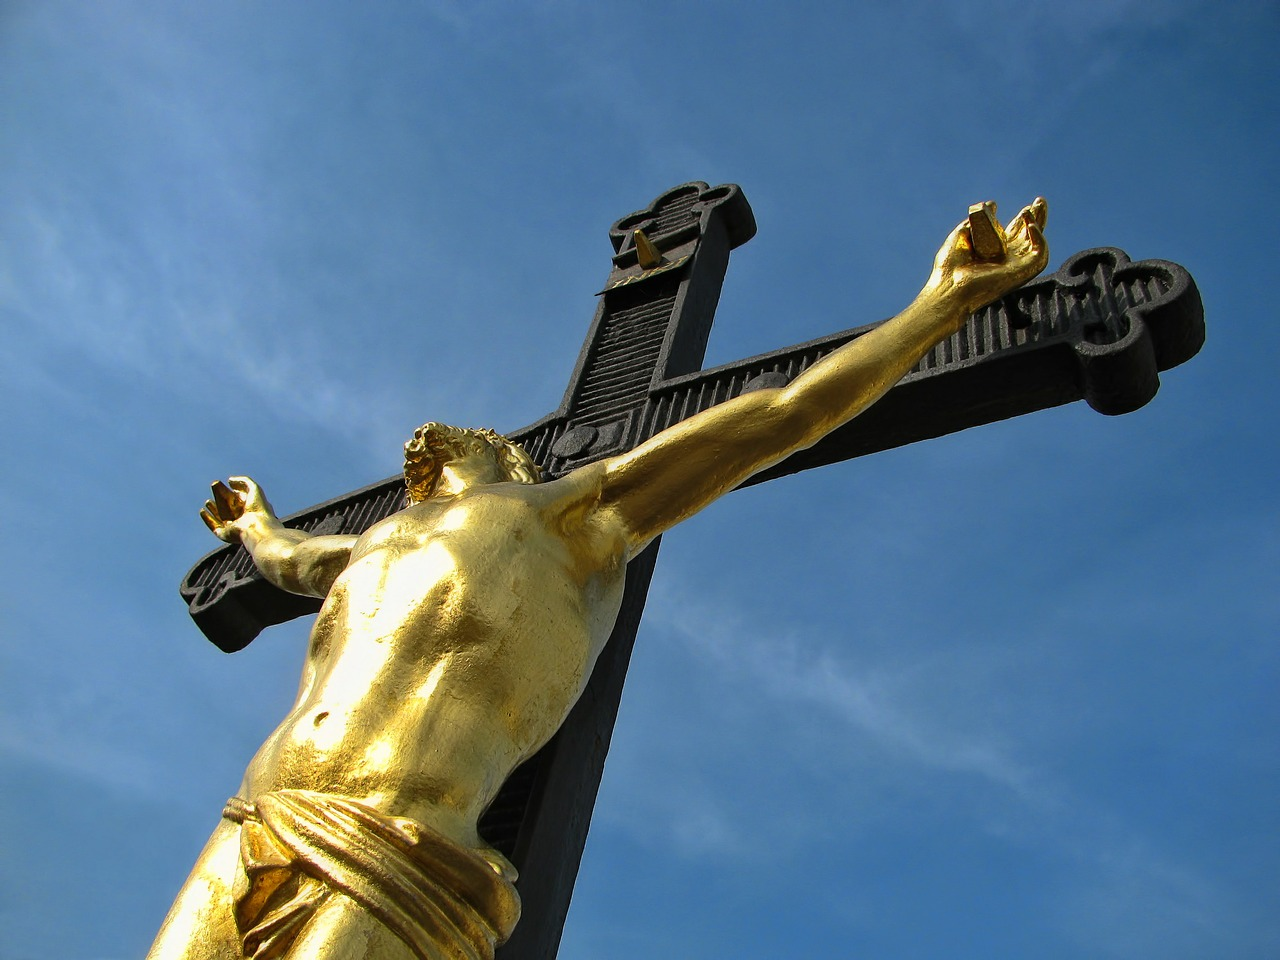 Jesus on the Cross